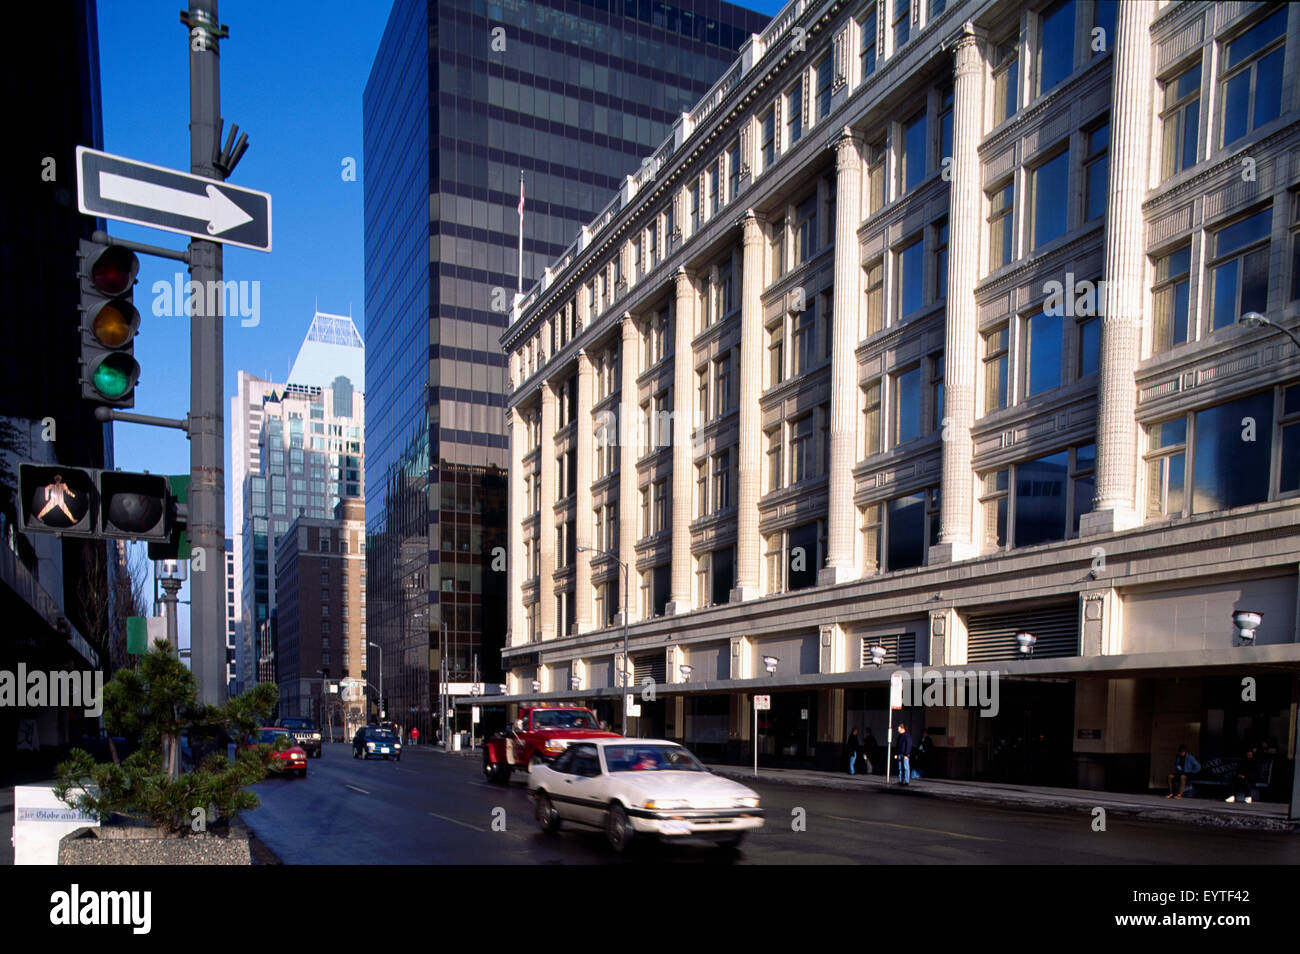 Vancouver, BC, British Columbia, Canada - Downtown City Scene of Hudson's Bay Company Store along Georgia Street - Stock Image